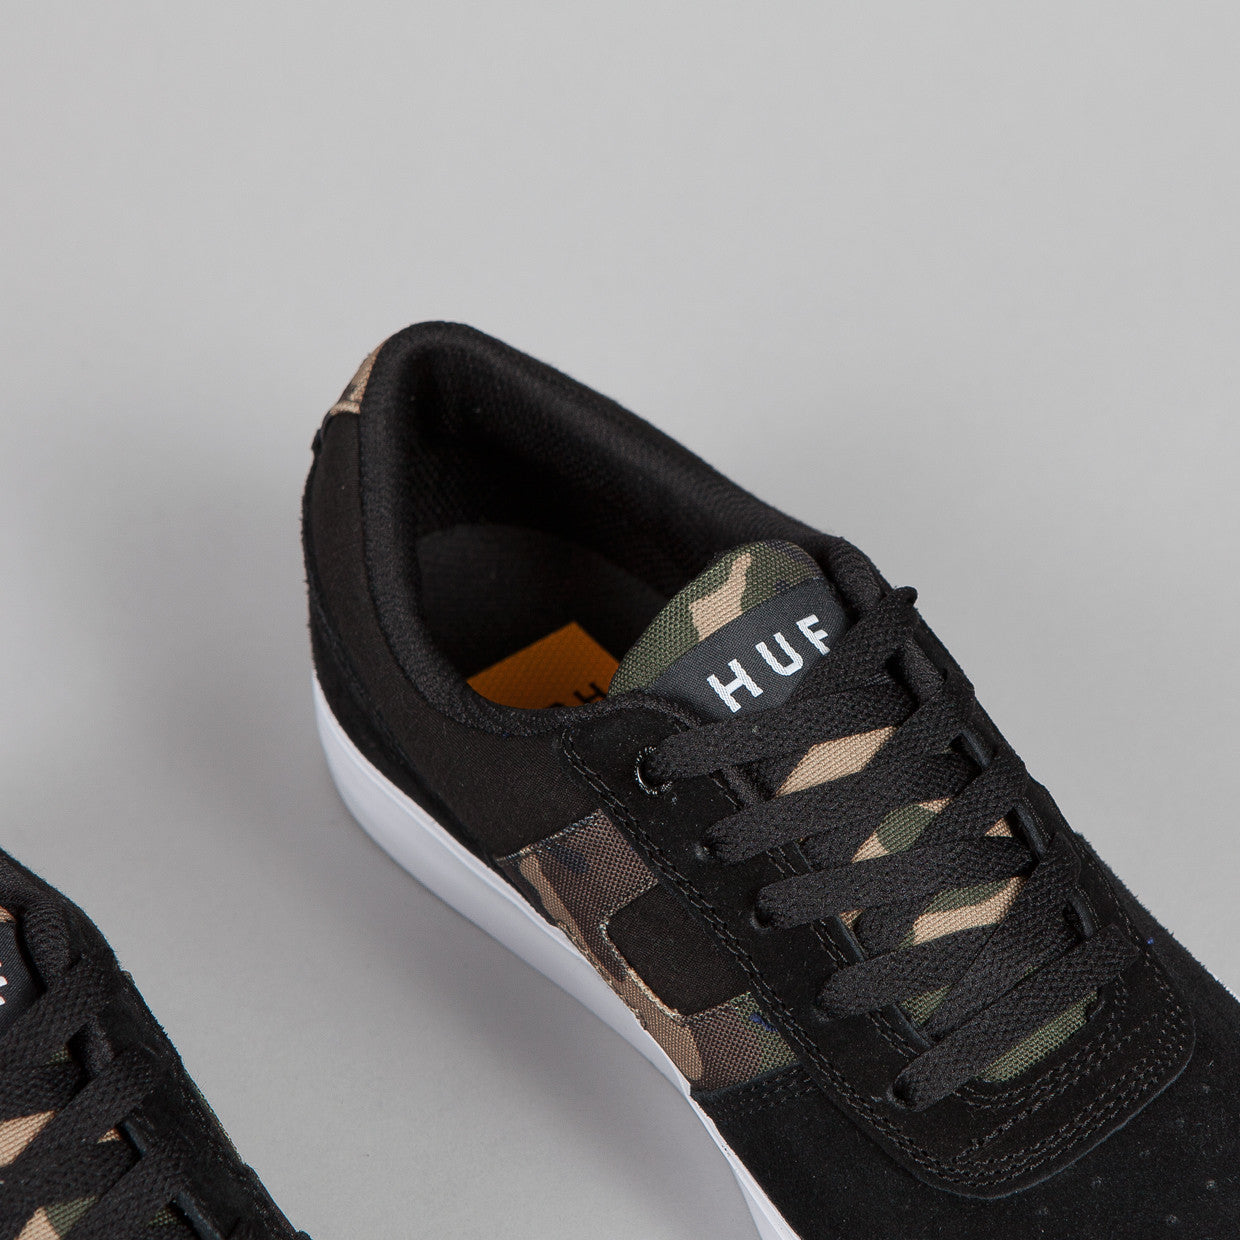 HUF Choice Black Camo